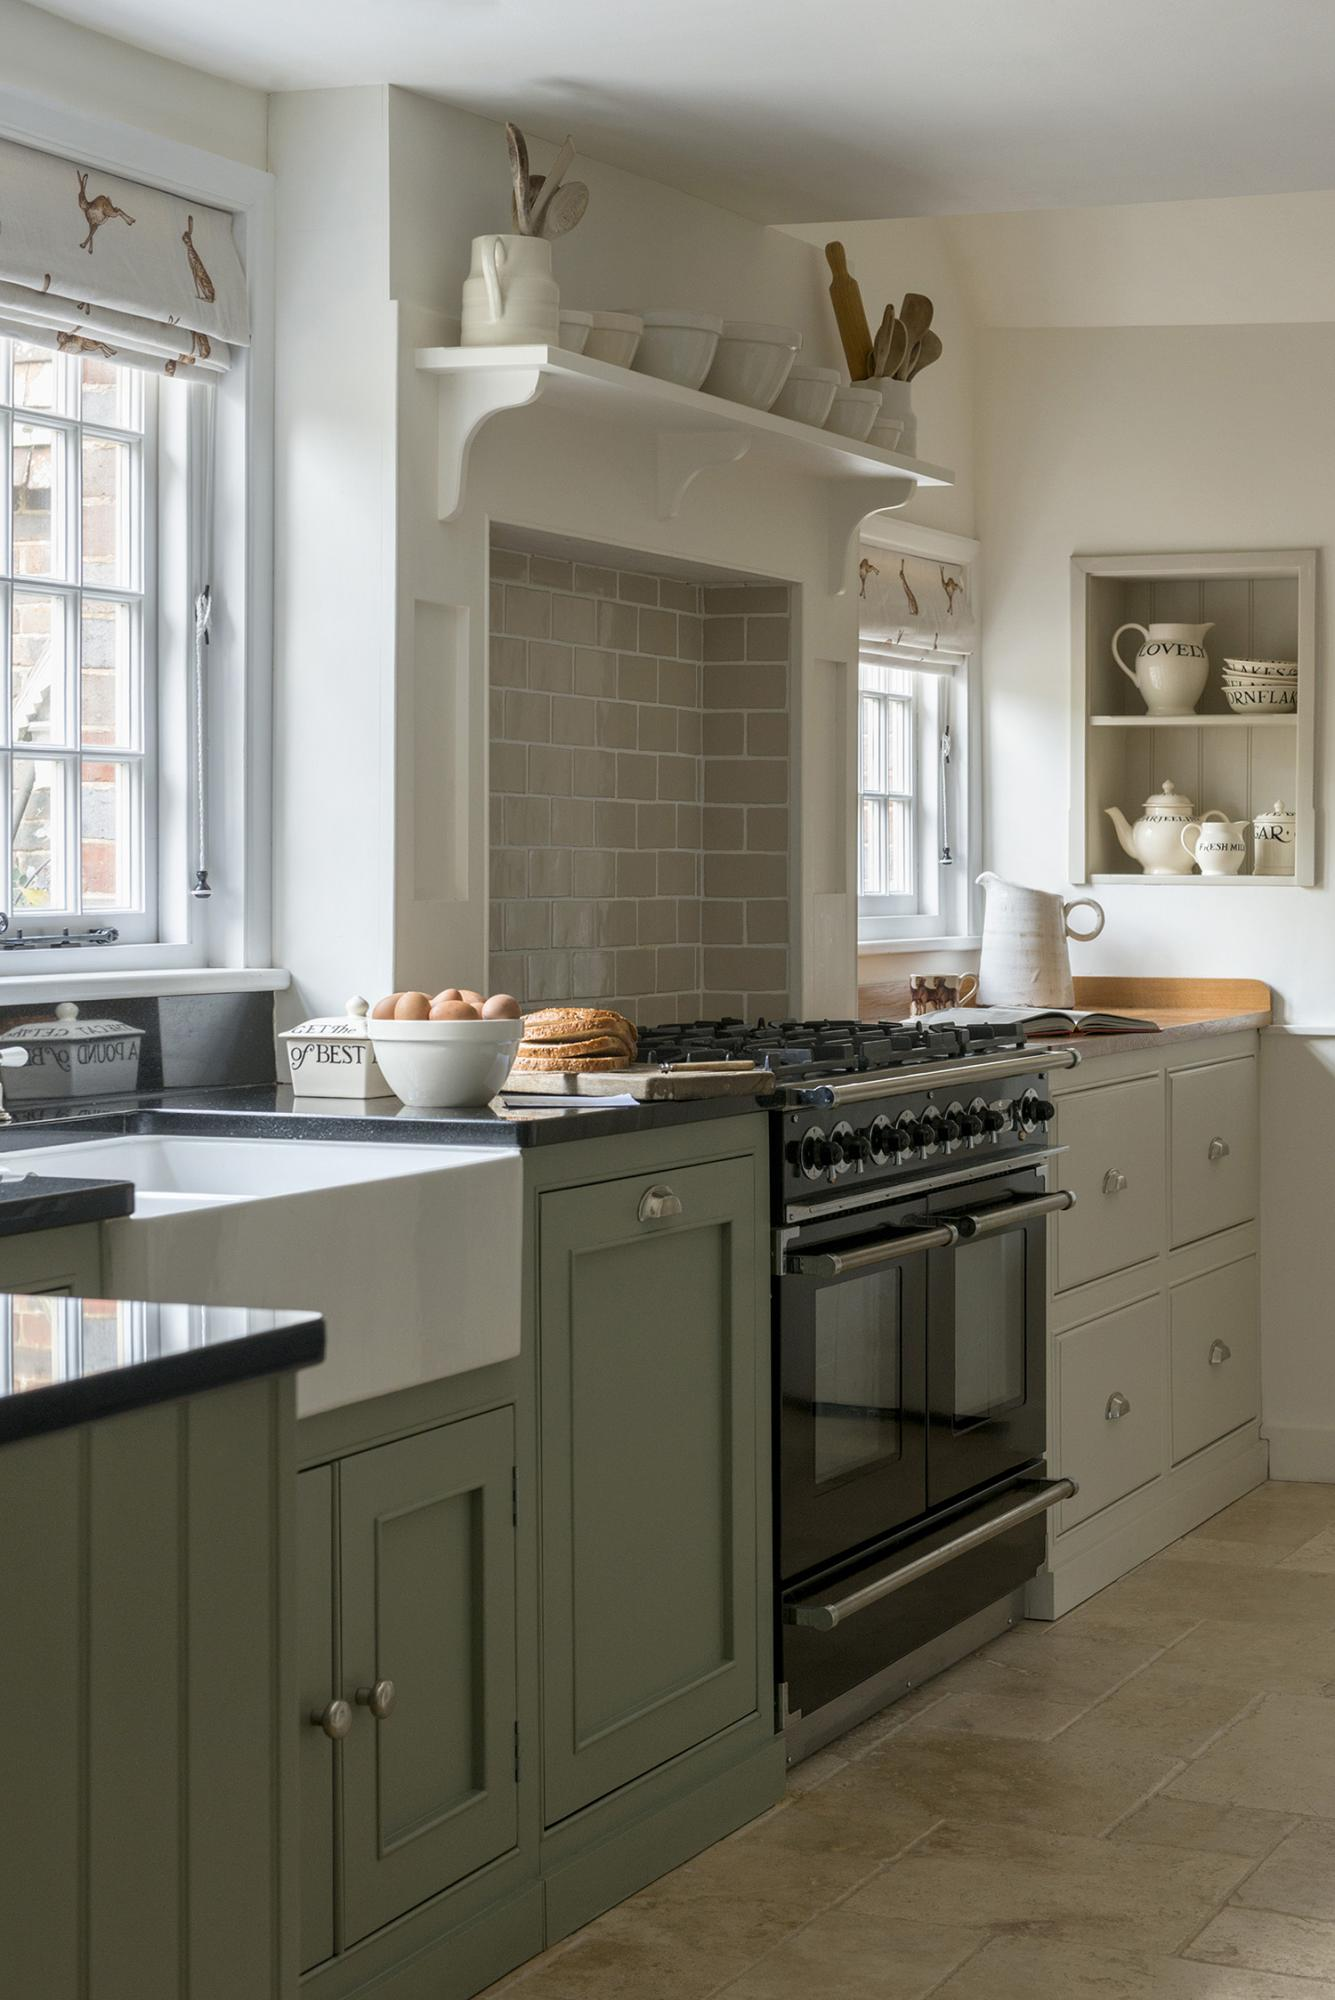 Farmhouse country kitchens design sussex surrey - Country style kitchen cabinets ...